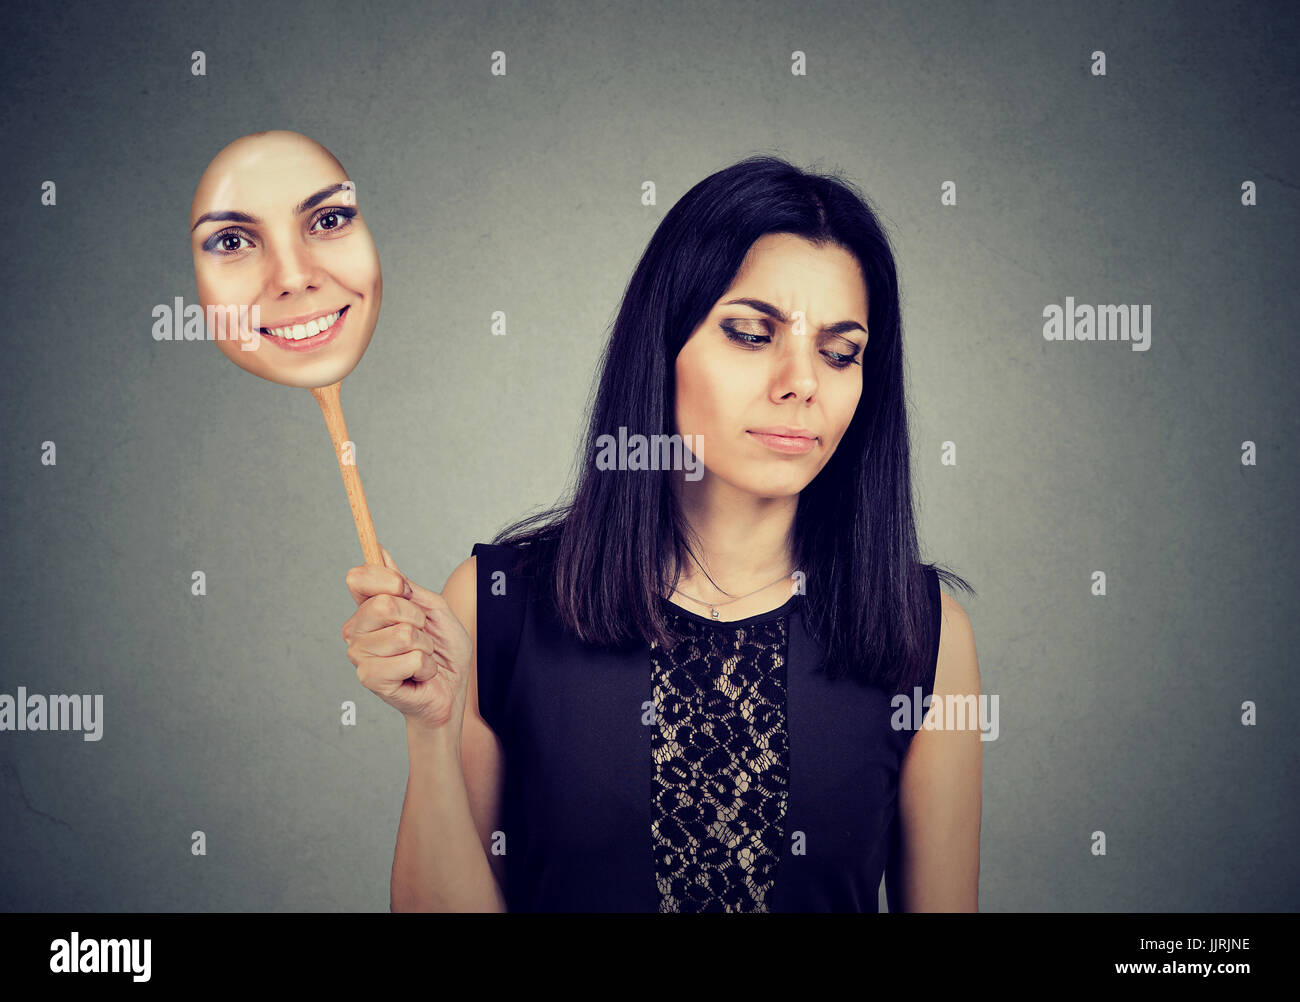 Young woman with sad expression taking of a mask expressing cheerfulness - Stock Image